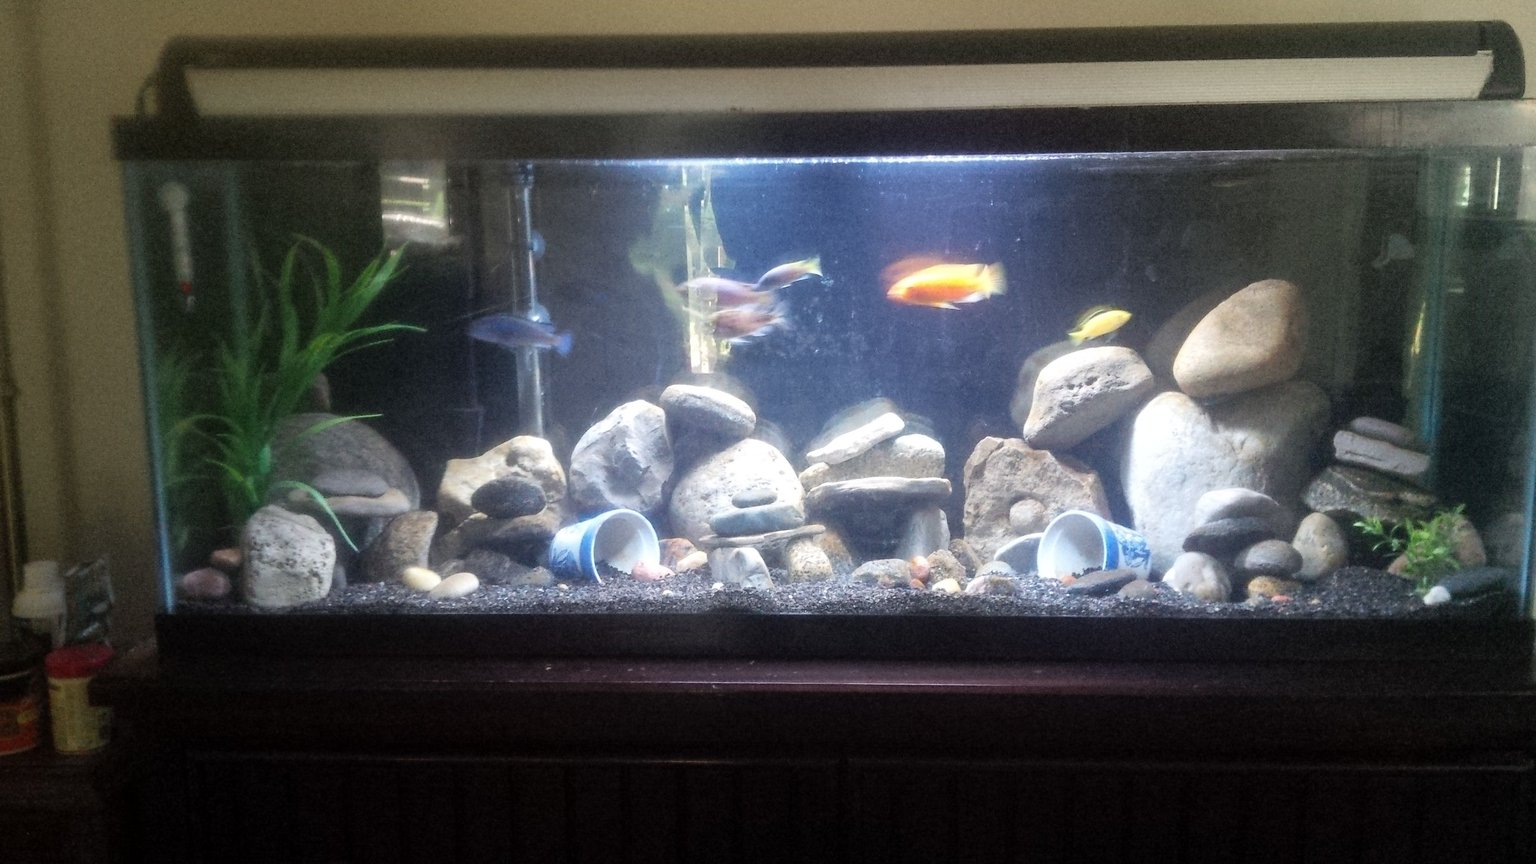 55 gallons freshwater fish tank (mostly fish and non-living decorations) - 55 gallon African cichild tank